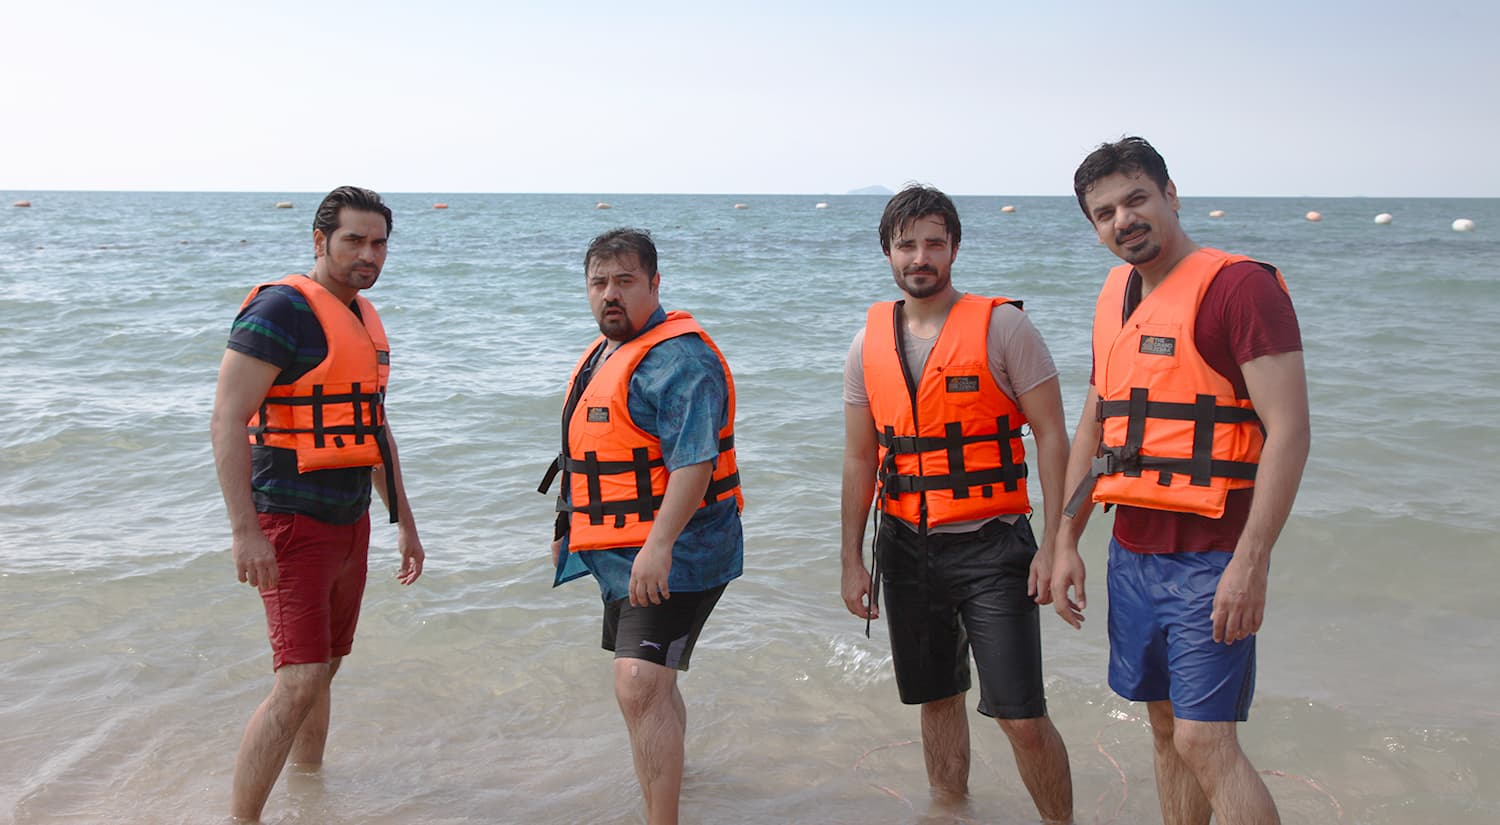 Sherry (Humayun Saeed) with his boys — Publicity photo